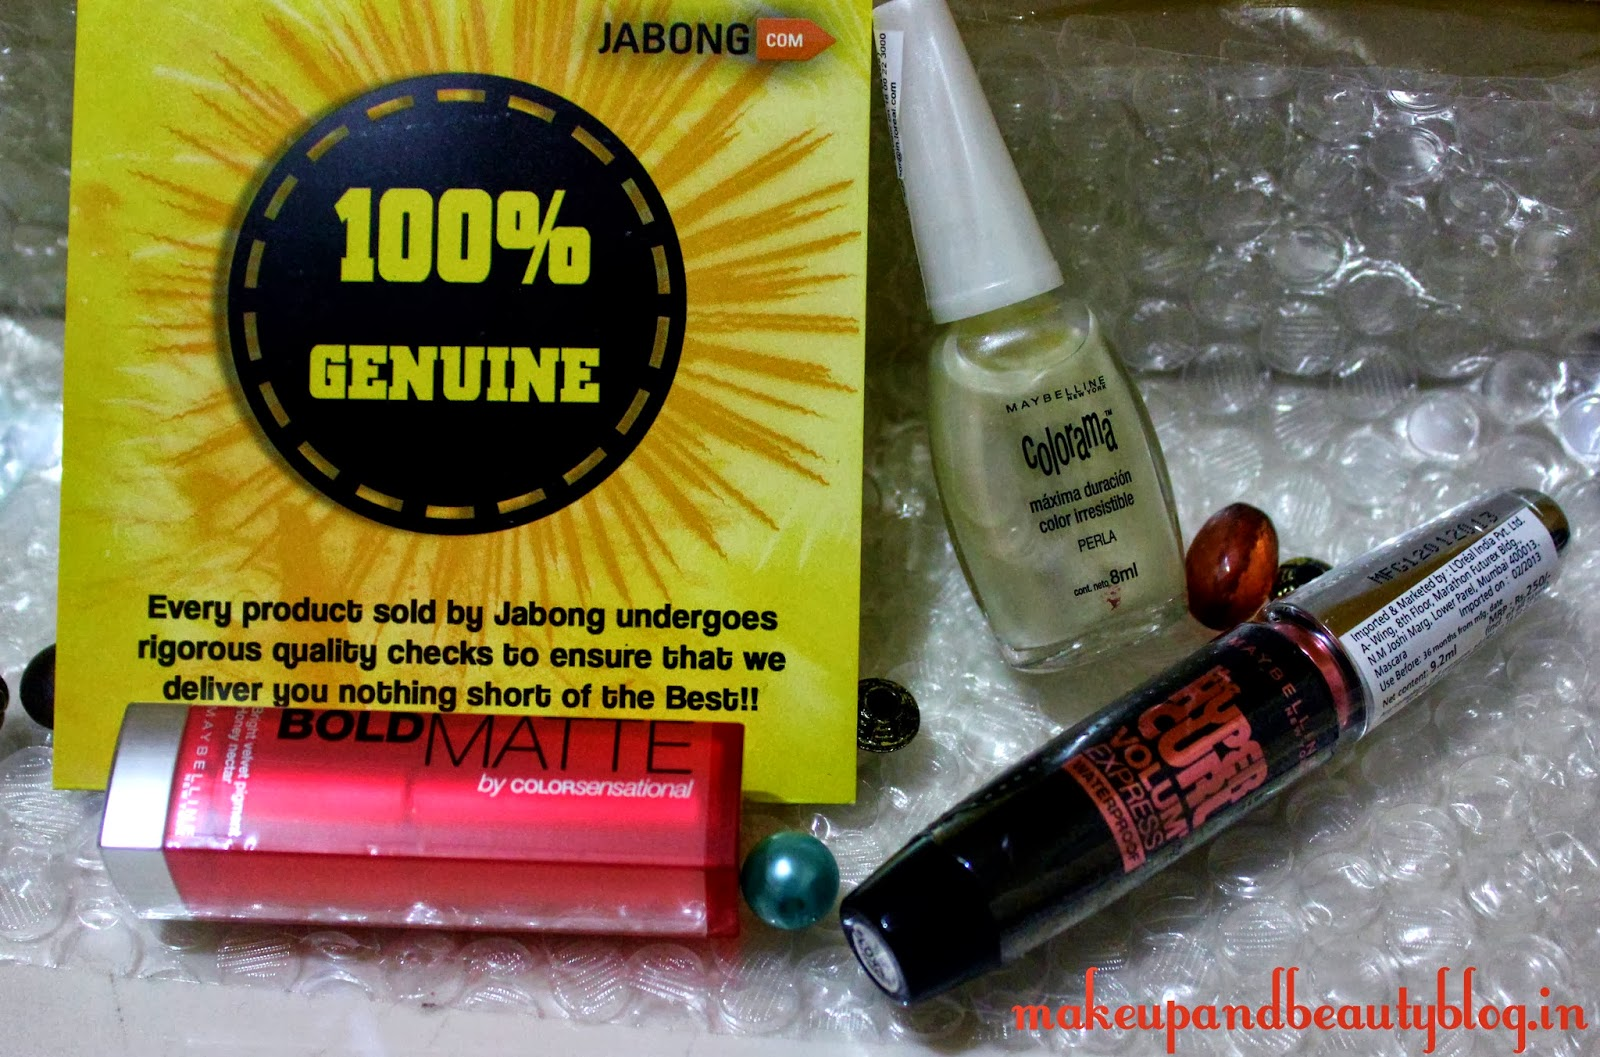 Online Shopping Website Review  Jabong.com - Makeup Review And ... 37fa134fc60a3